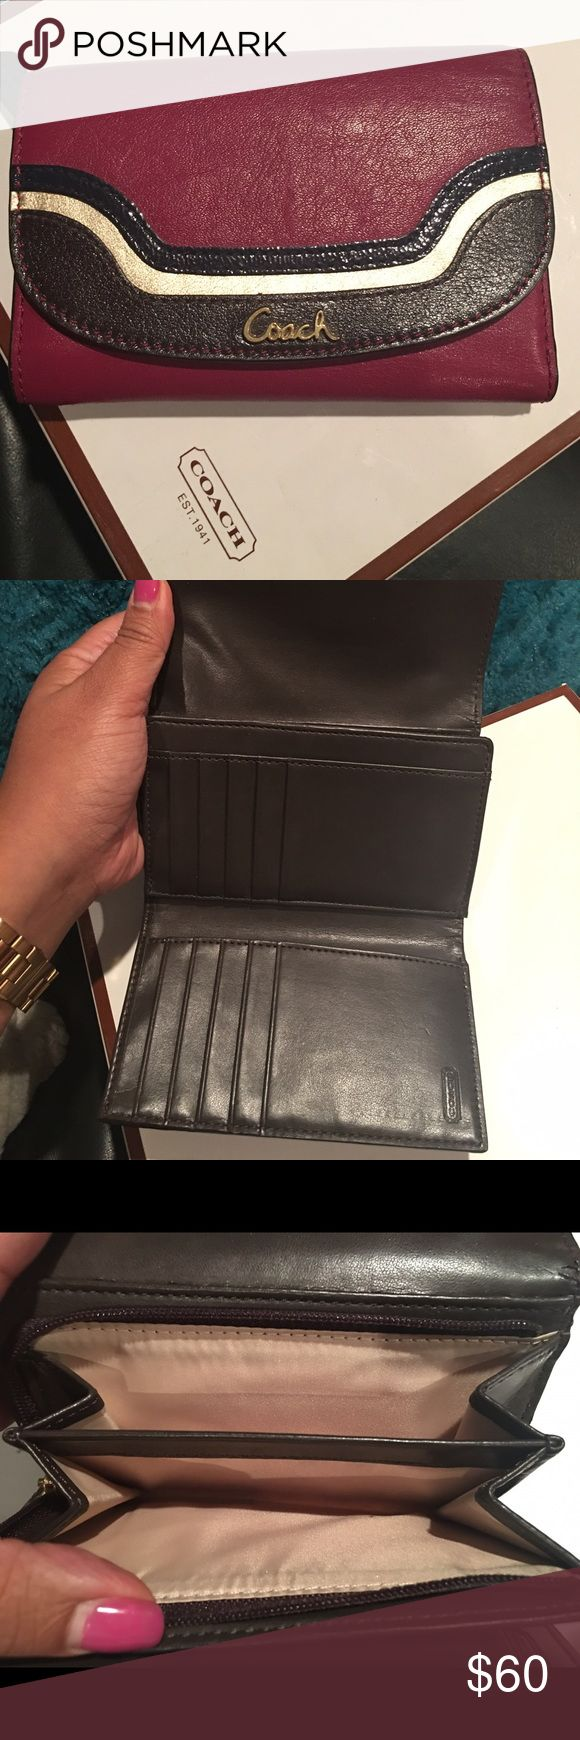 COACH authentic medium trifold wallet This is a sold out color in fuschia, brown, gold and navy blue wallet. Used for about a month- virtually mint. No stains, scratches or dirt. Please contact me with any questions. Thanks! Coach Bags Wallets